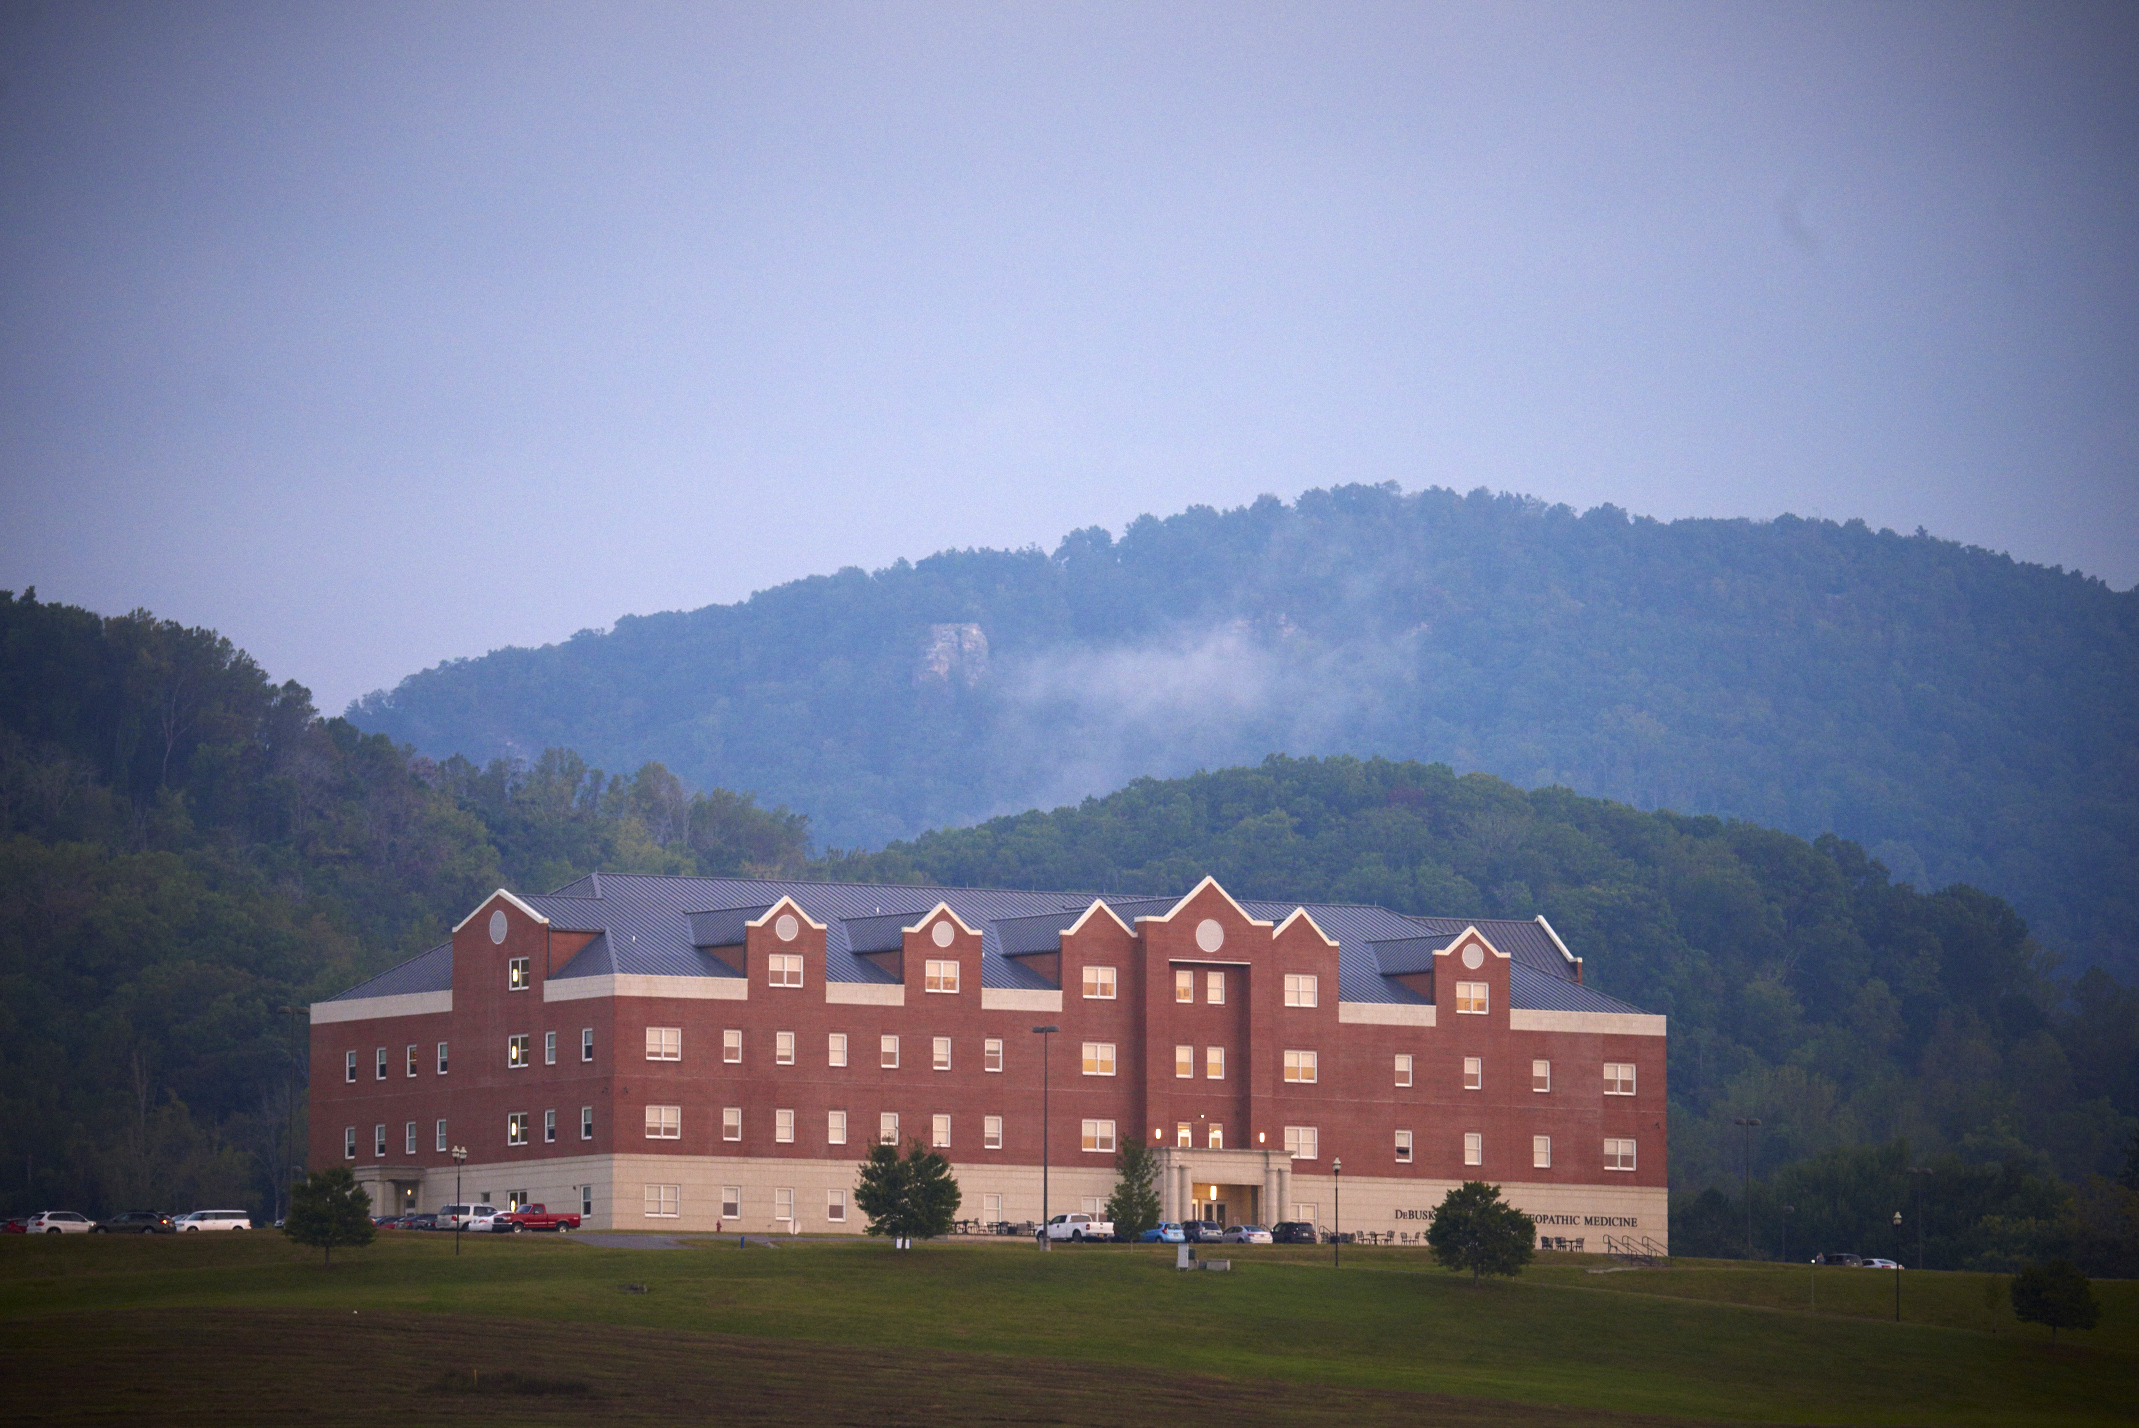 Lincoln Memorial UniversityDeBusk College of Osteopathic